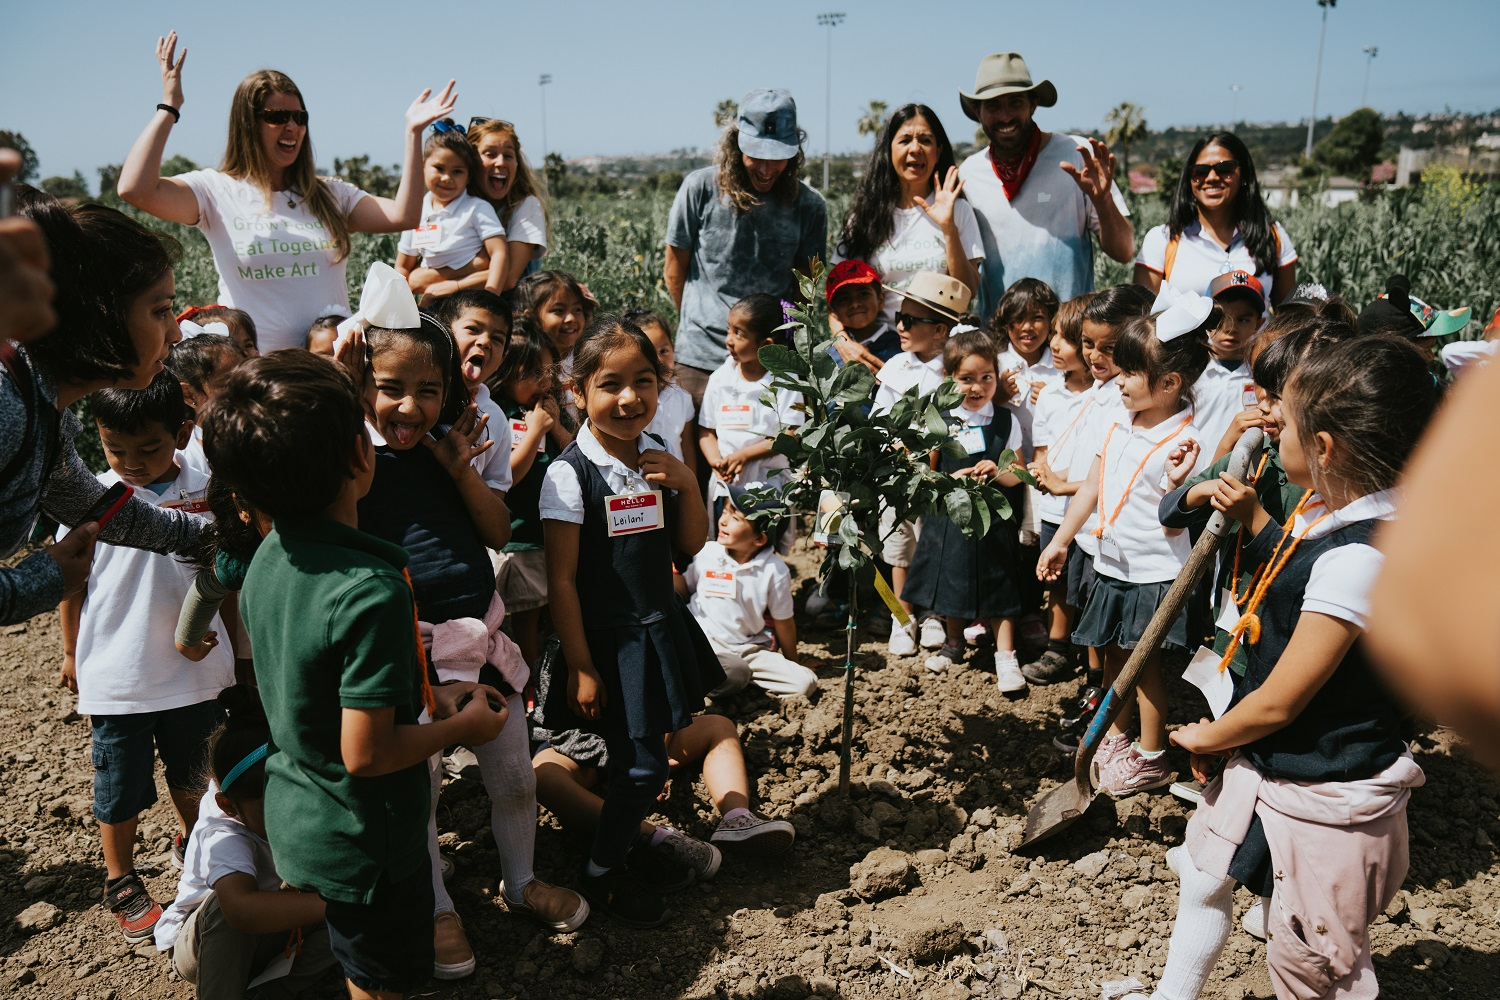 Kindergartners from Kinoshita Elementary School plant a citrus tree on Earth Day. Photo: Kat Reynolds of The Ecology Center